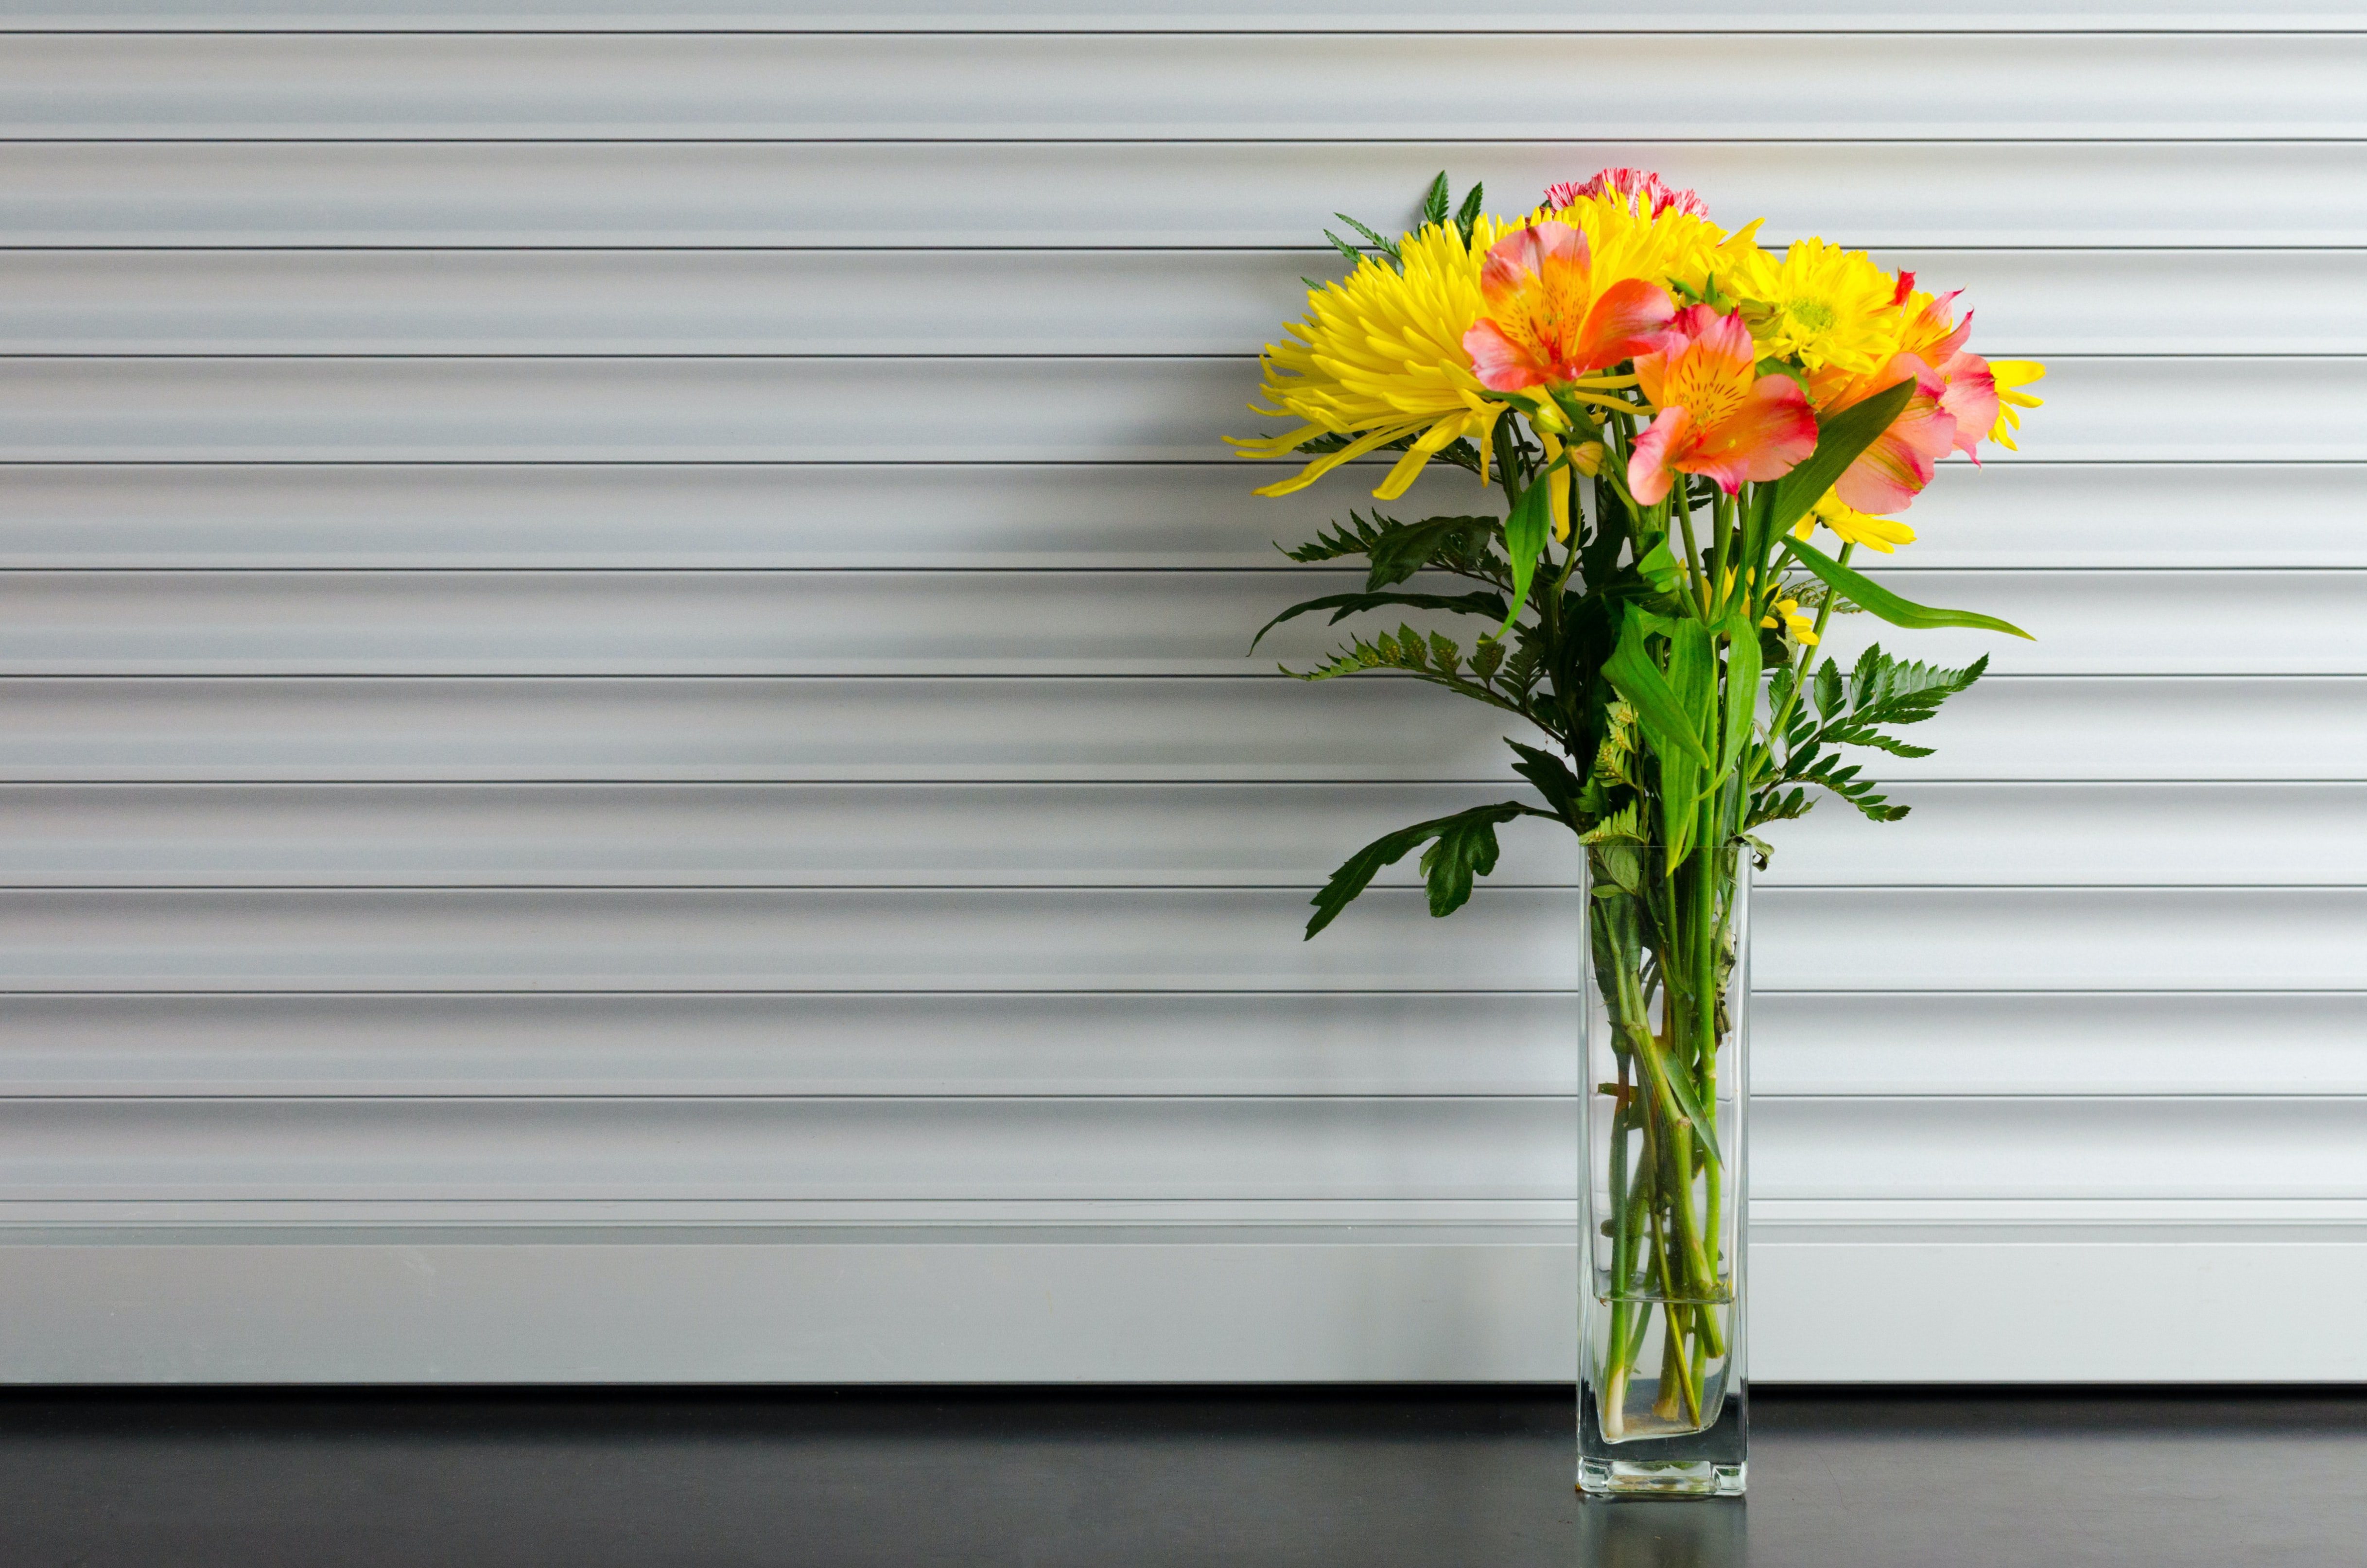 A glass vase holding yellow and red flowers